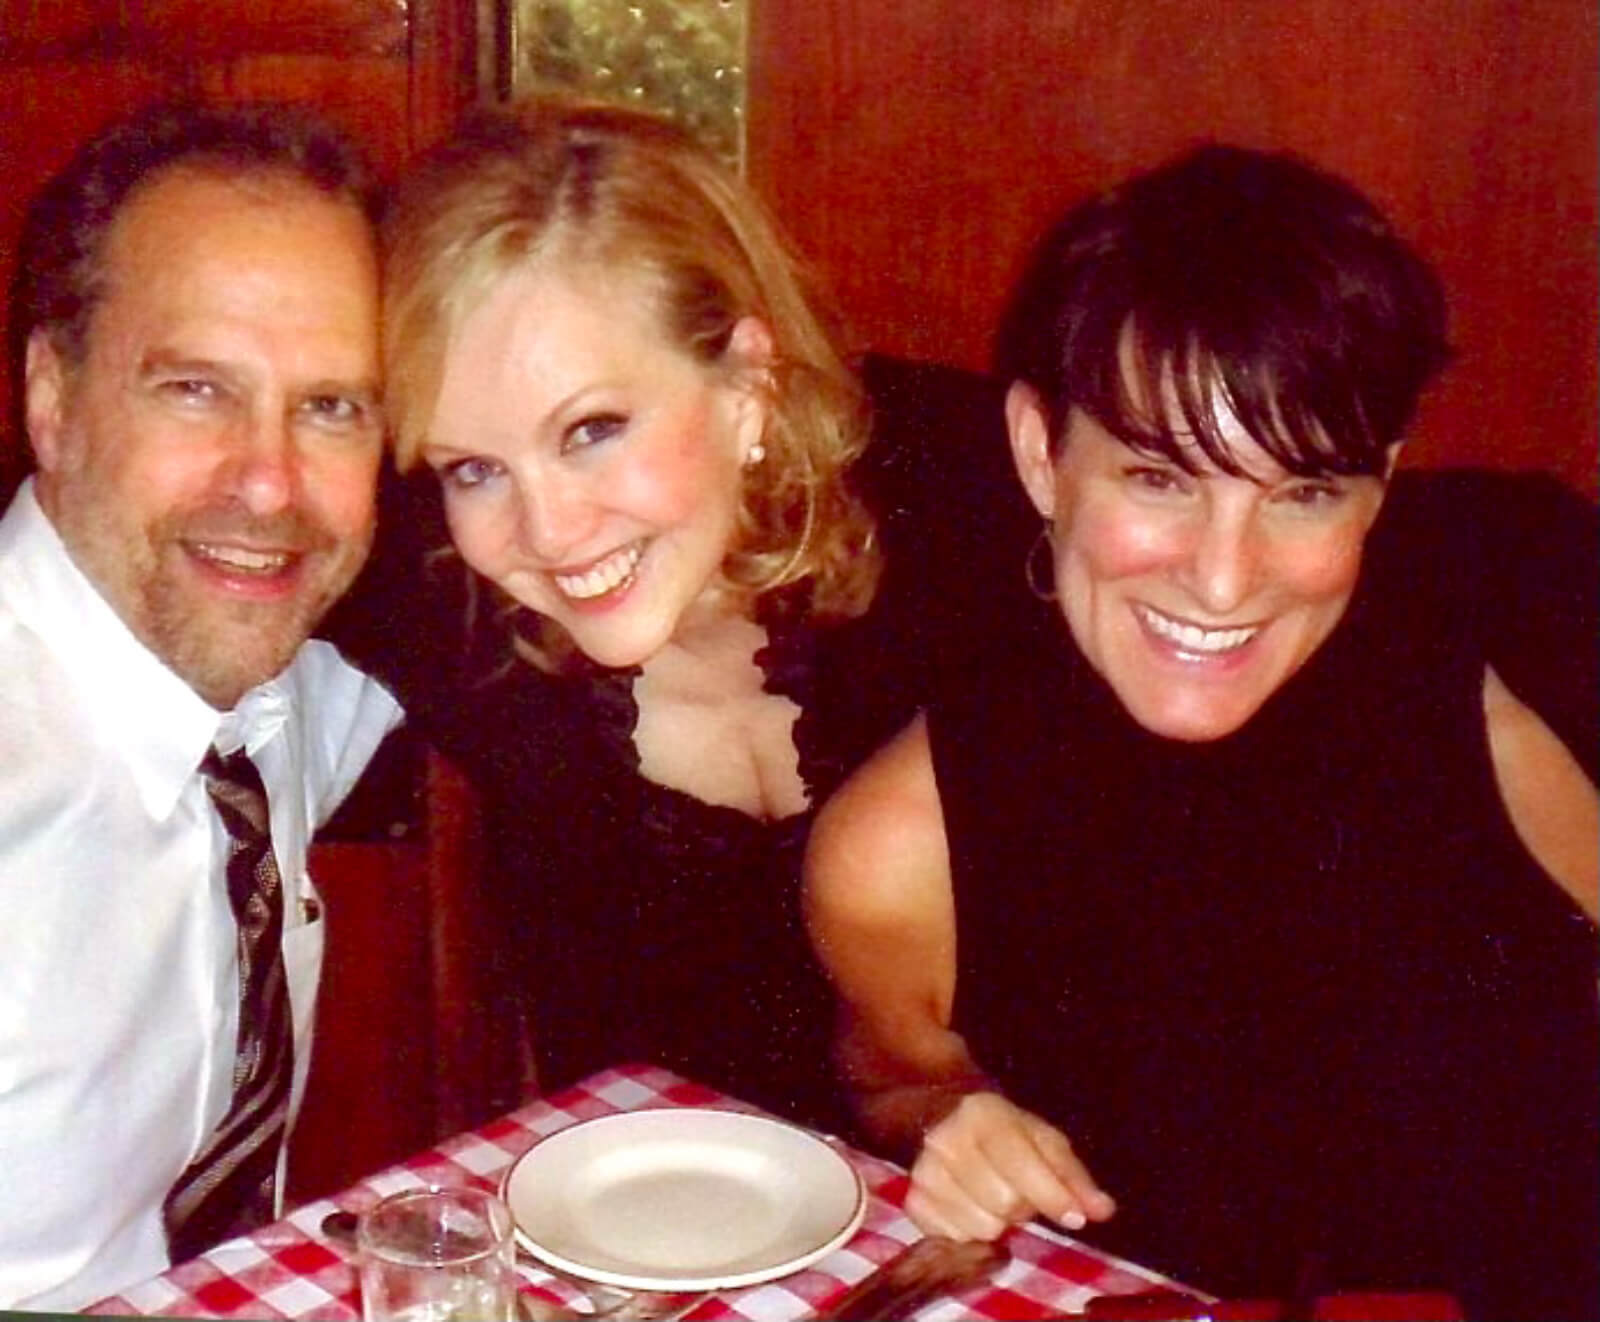 Stro's lawyer Rick Pappas and Resident Director/Associate Choreographer, Tara Young. All are seen eating in an Italian restaurant with a red checkered table cloth.